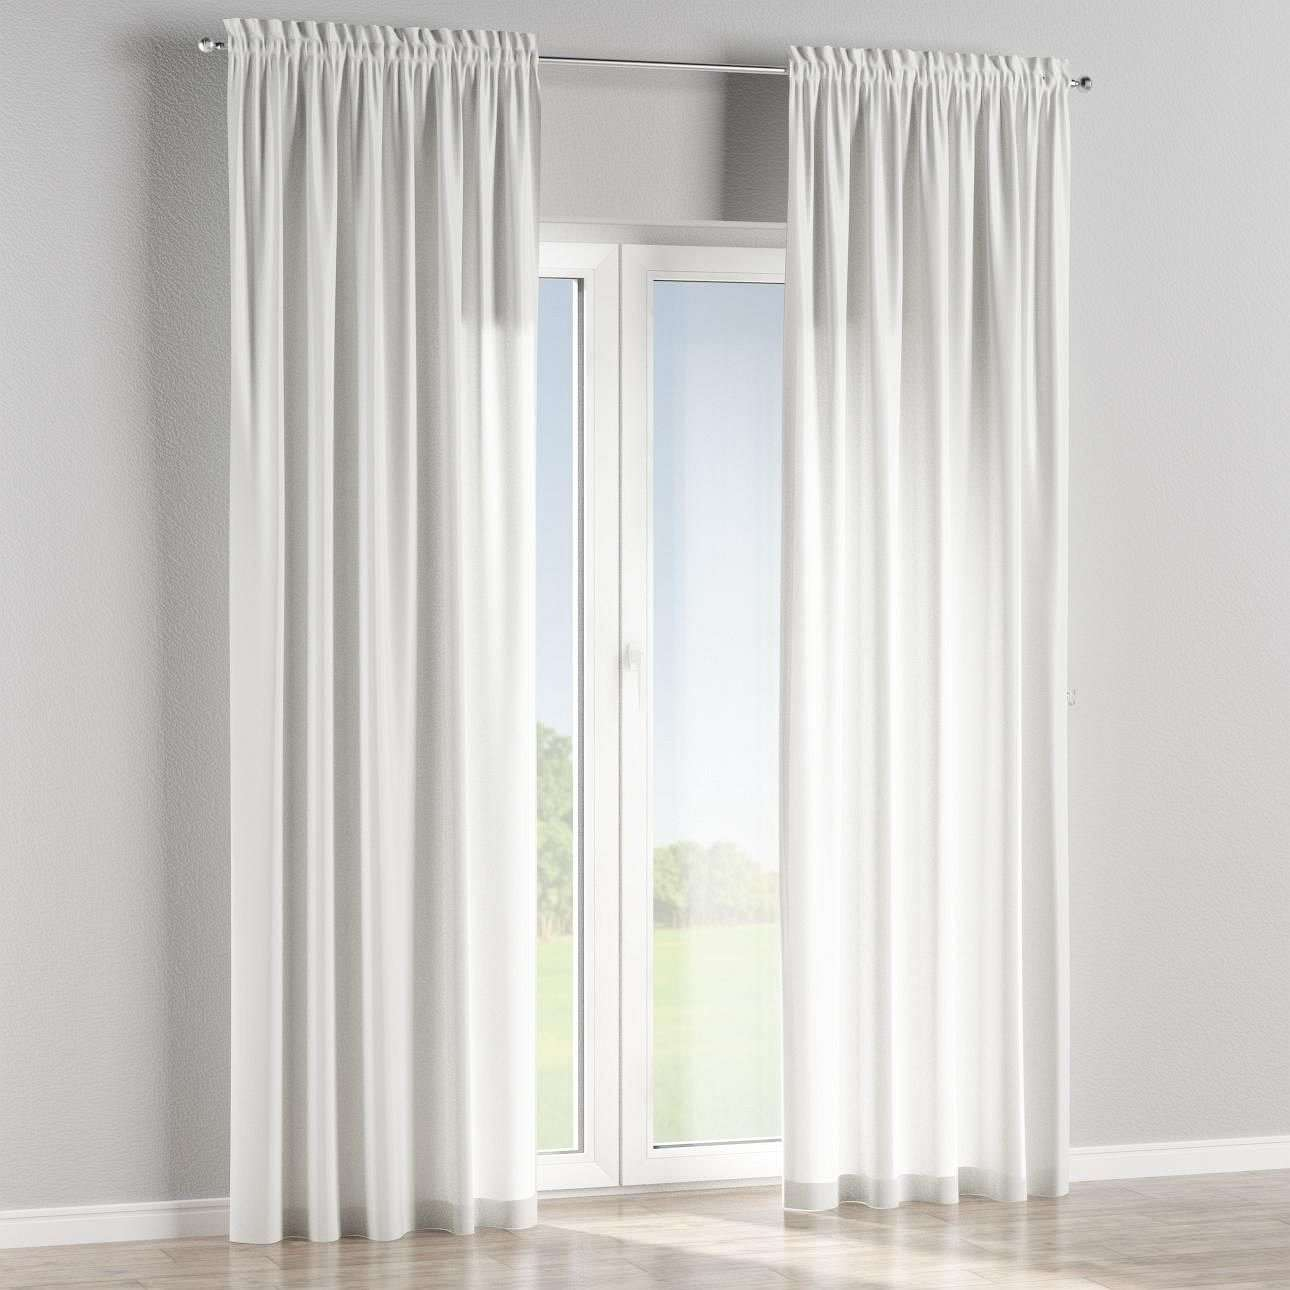 Slot and frill curtains in collection Milano, fabric: 150-34